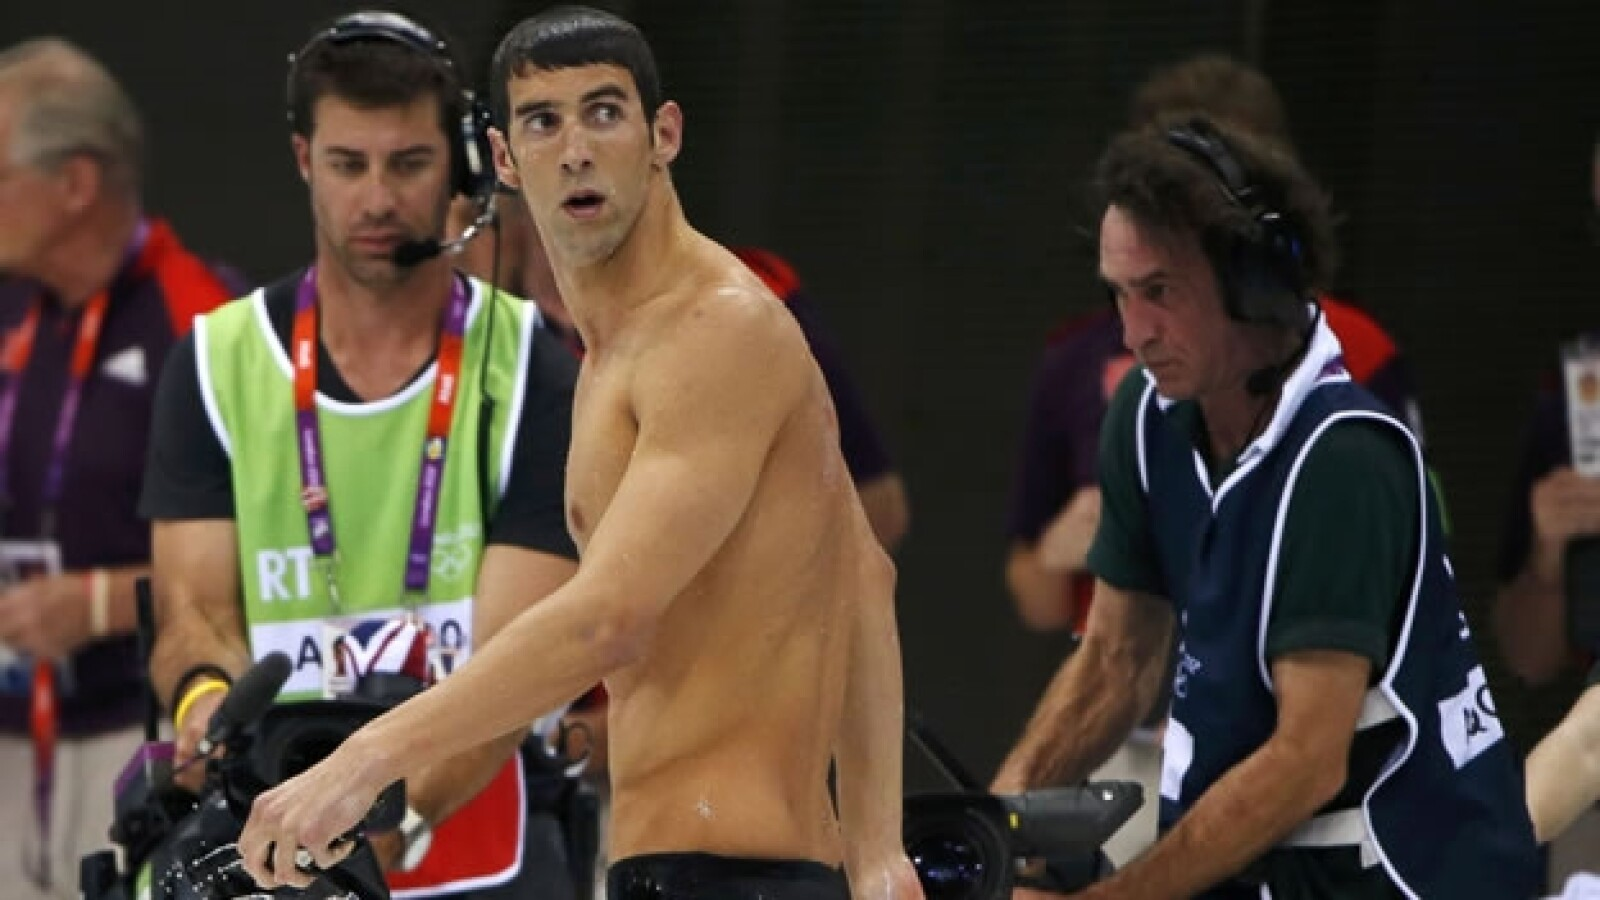 michael phelps londres medalla record